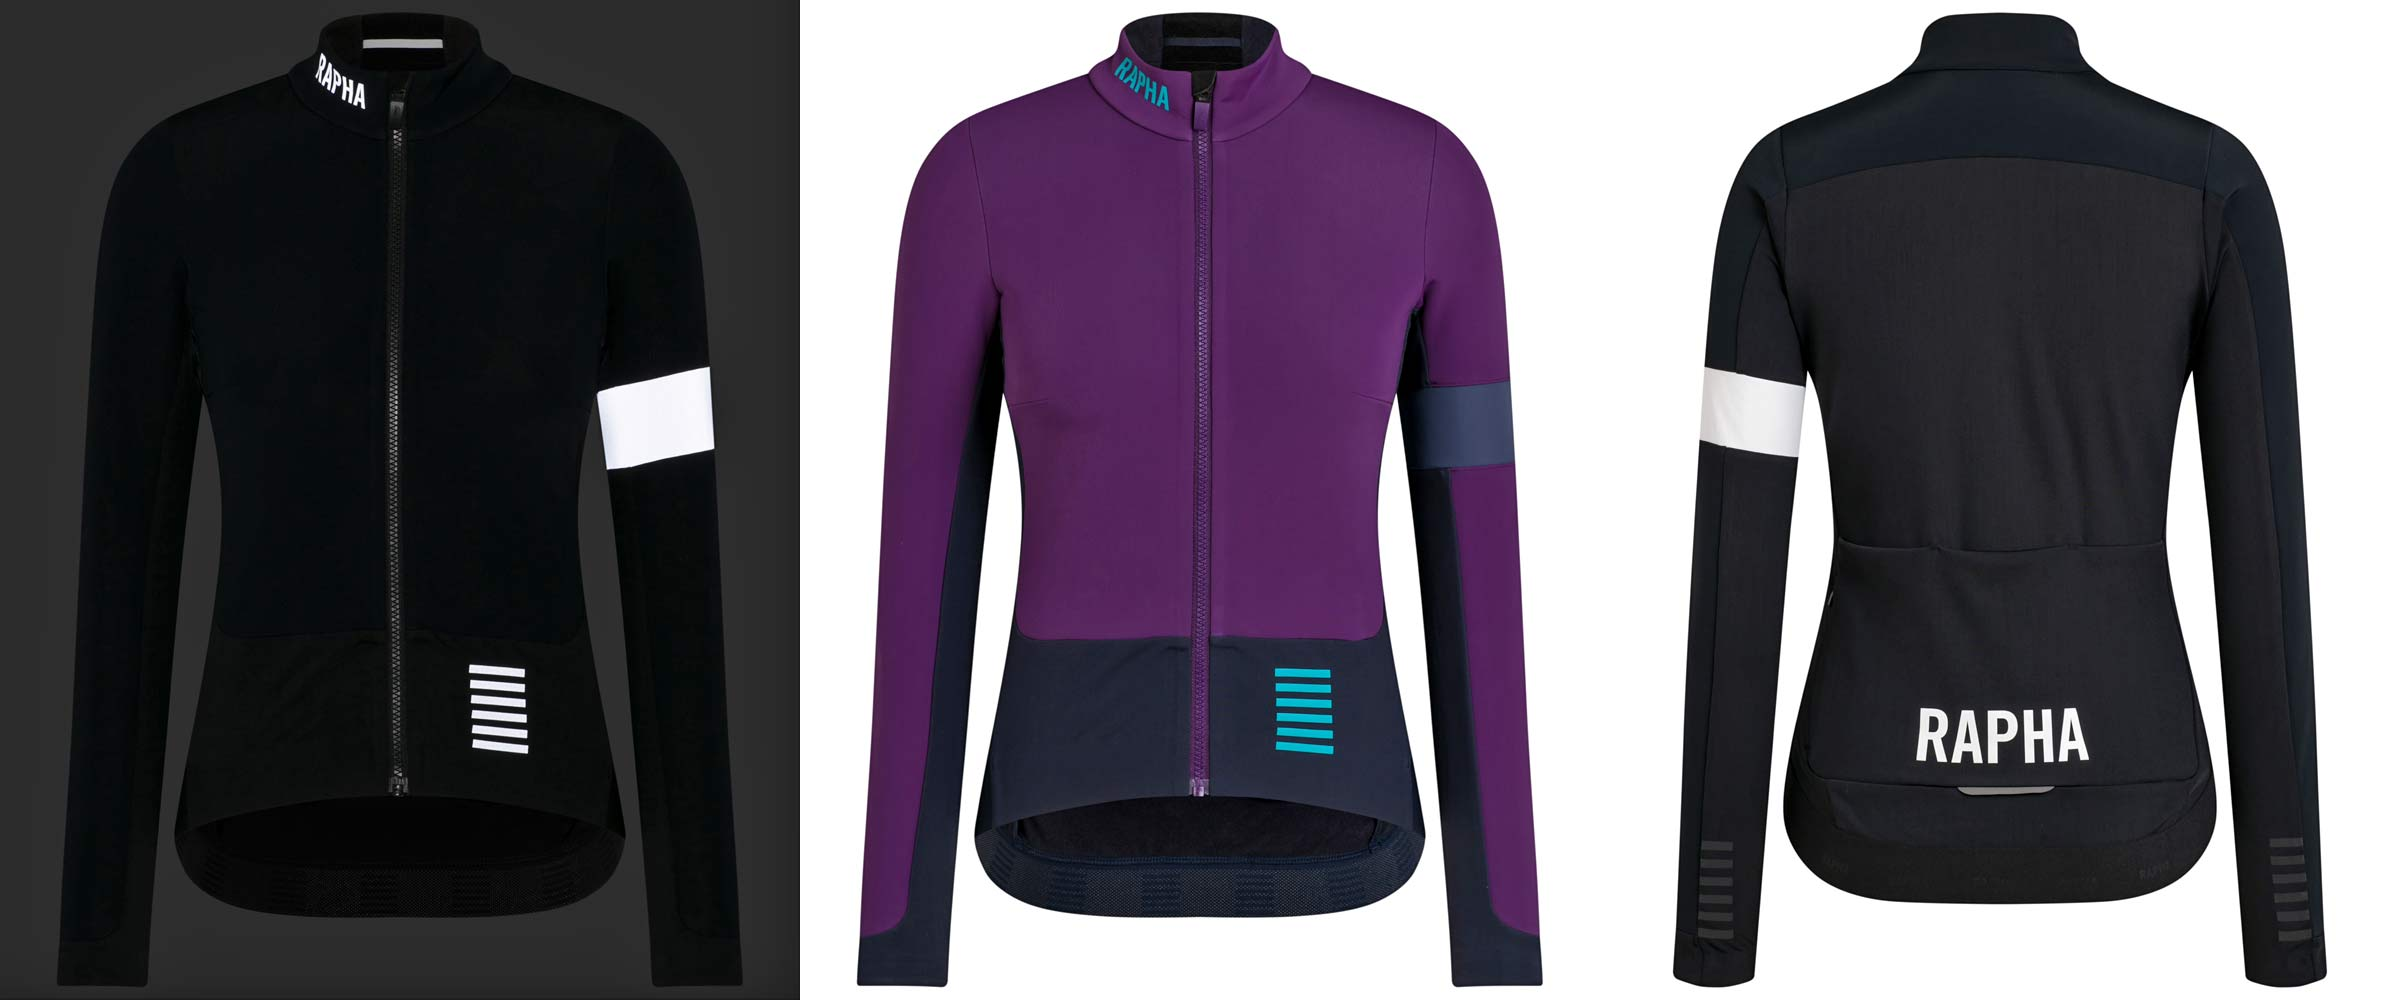 Rapha Pro Team Winter road riding racing training collection, Pro Team Winter Jacket, women's colors